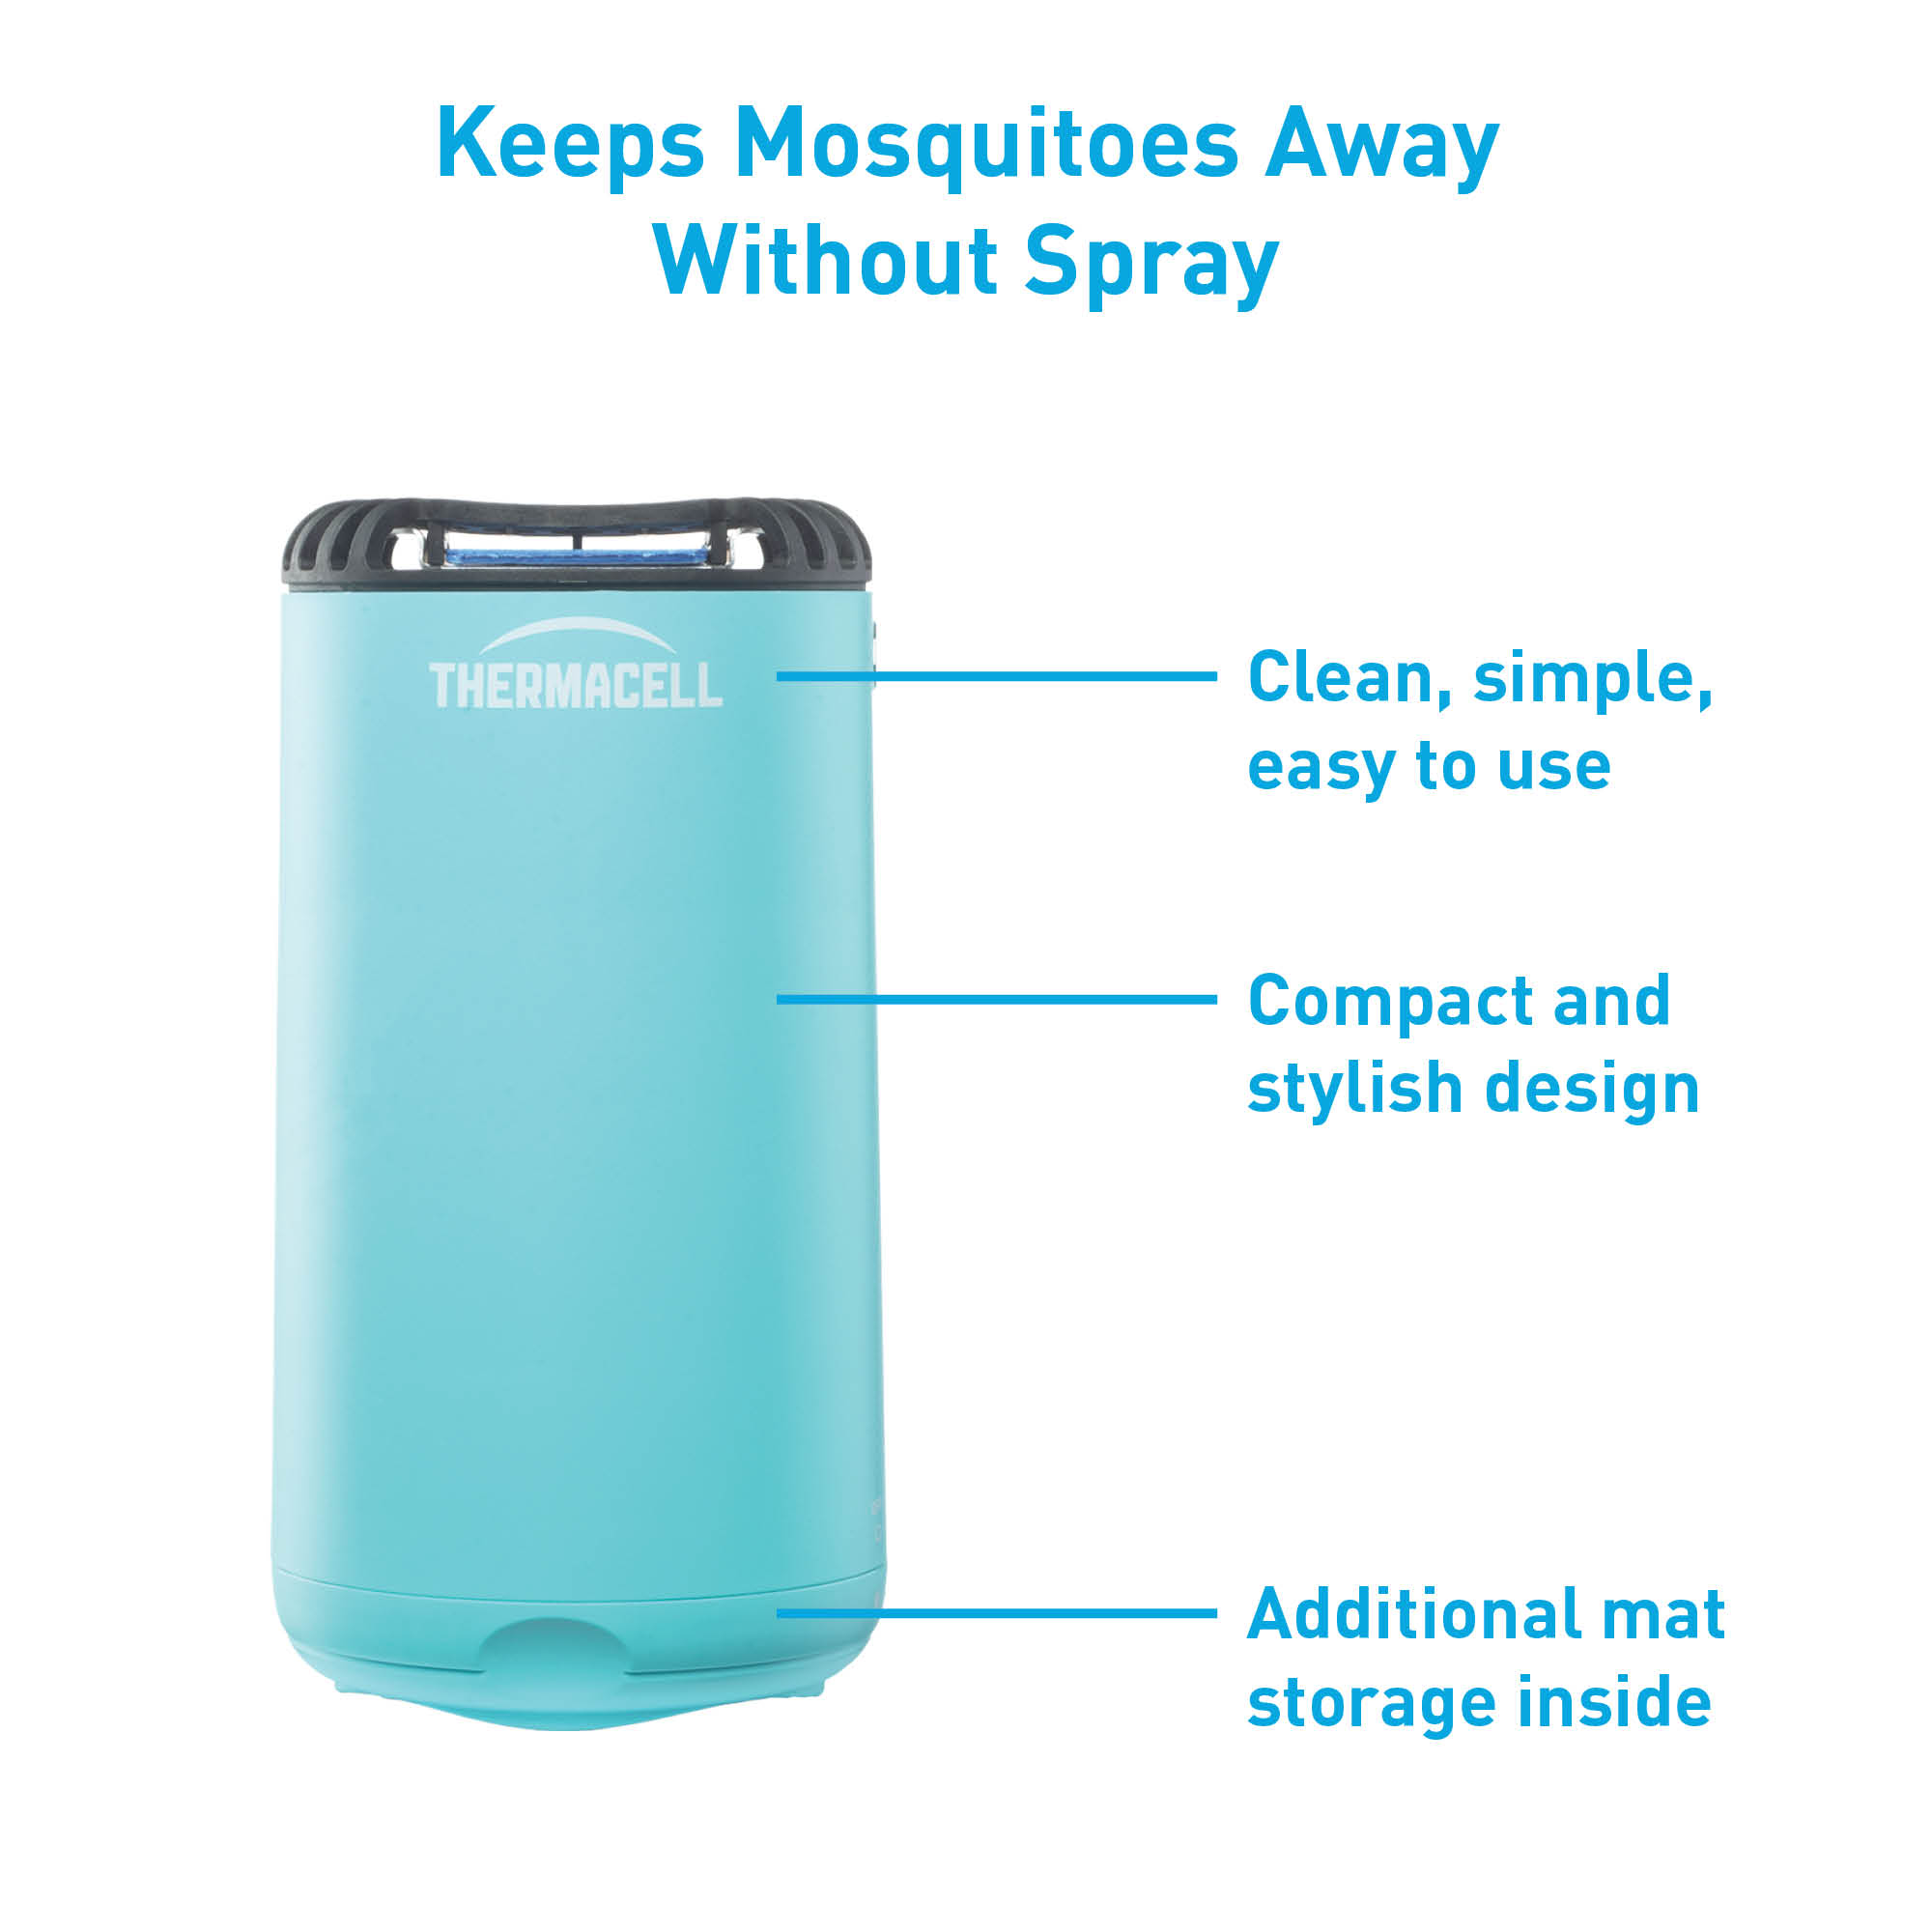 thermacell patio shield mosquito repeller glacial blue spray free